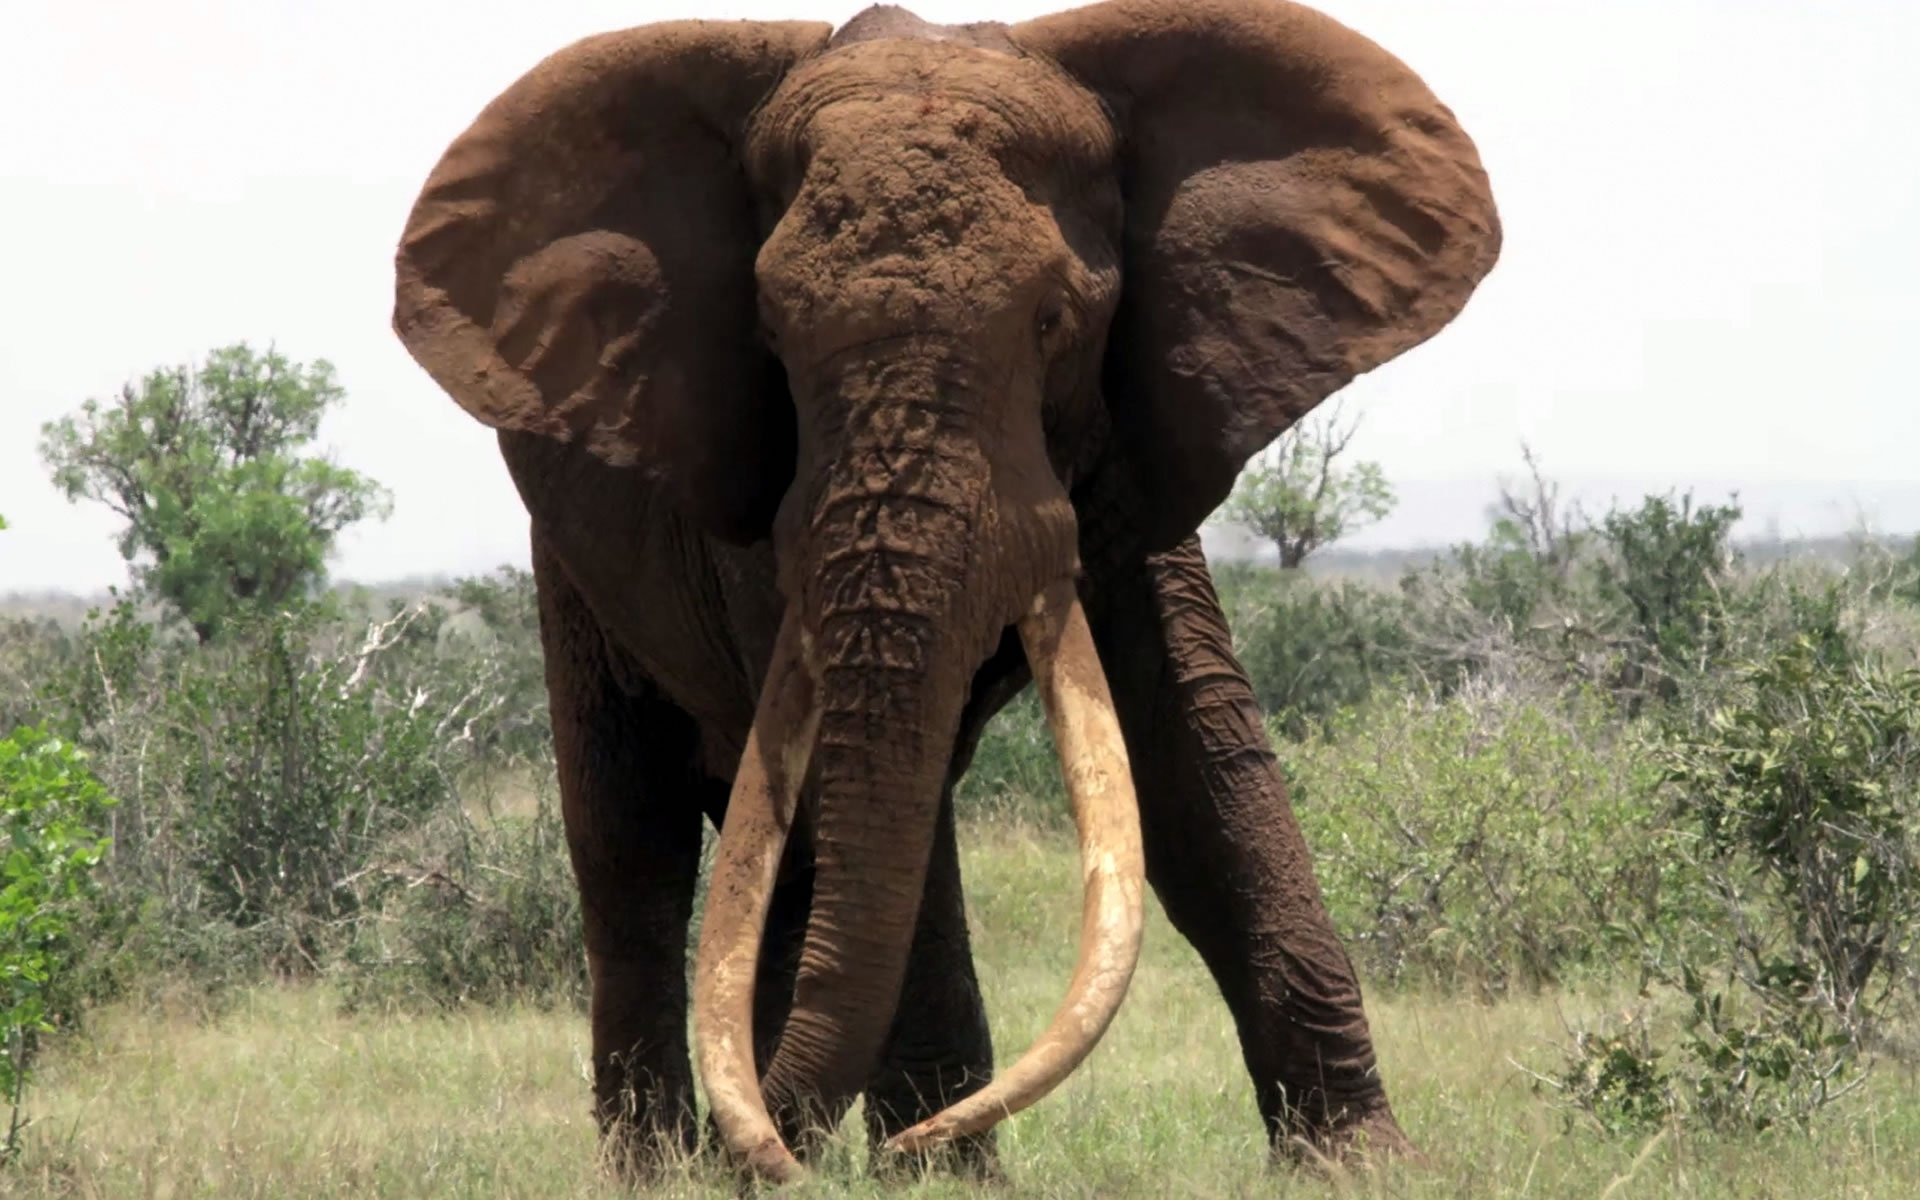 Today the world has risen to the shocking news of the death of Satao, one of an iconic rare breed of elephants known as tuskers due to their large tusks.